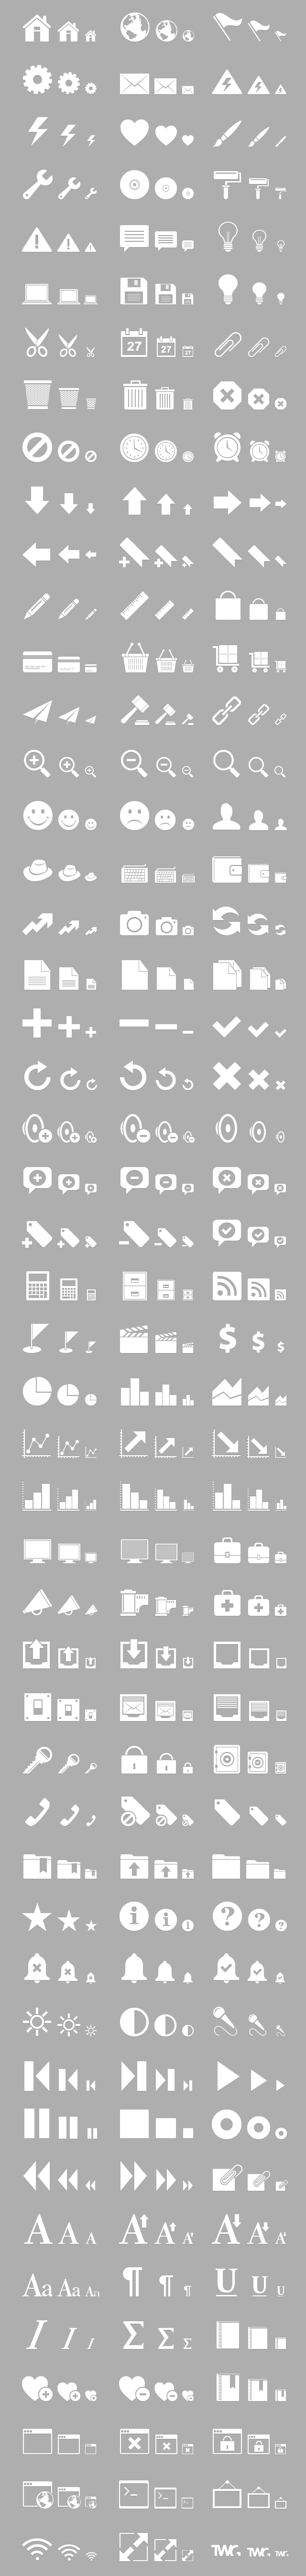 Retina Display Icon Set | Blog | The Working Group